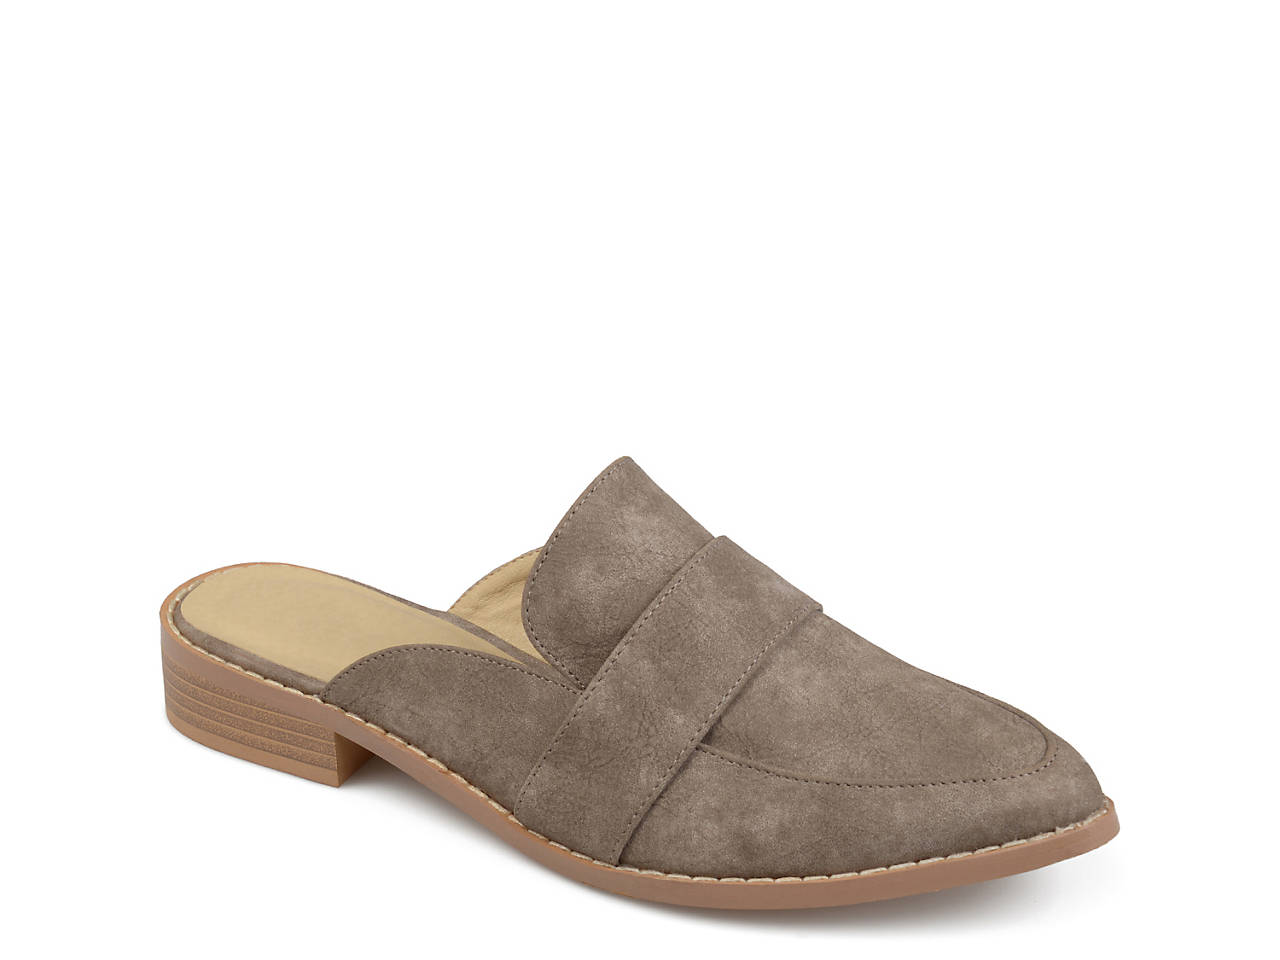 227018be8437 Journee Collection Keely Mule Women s Shoes